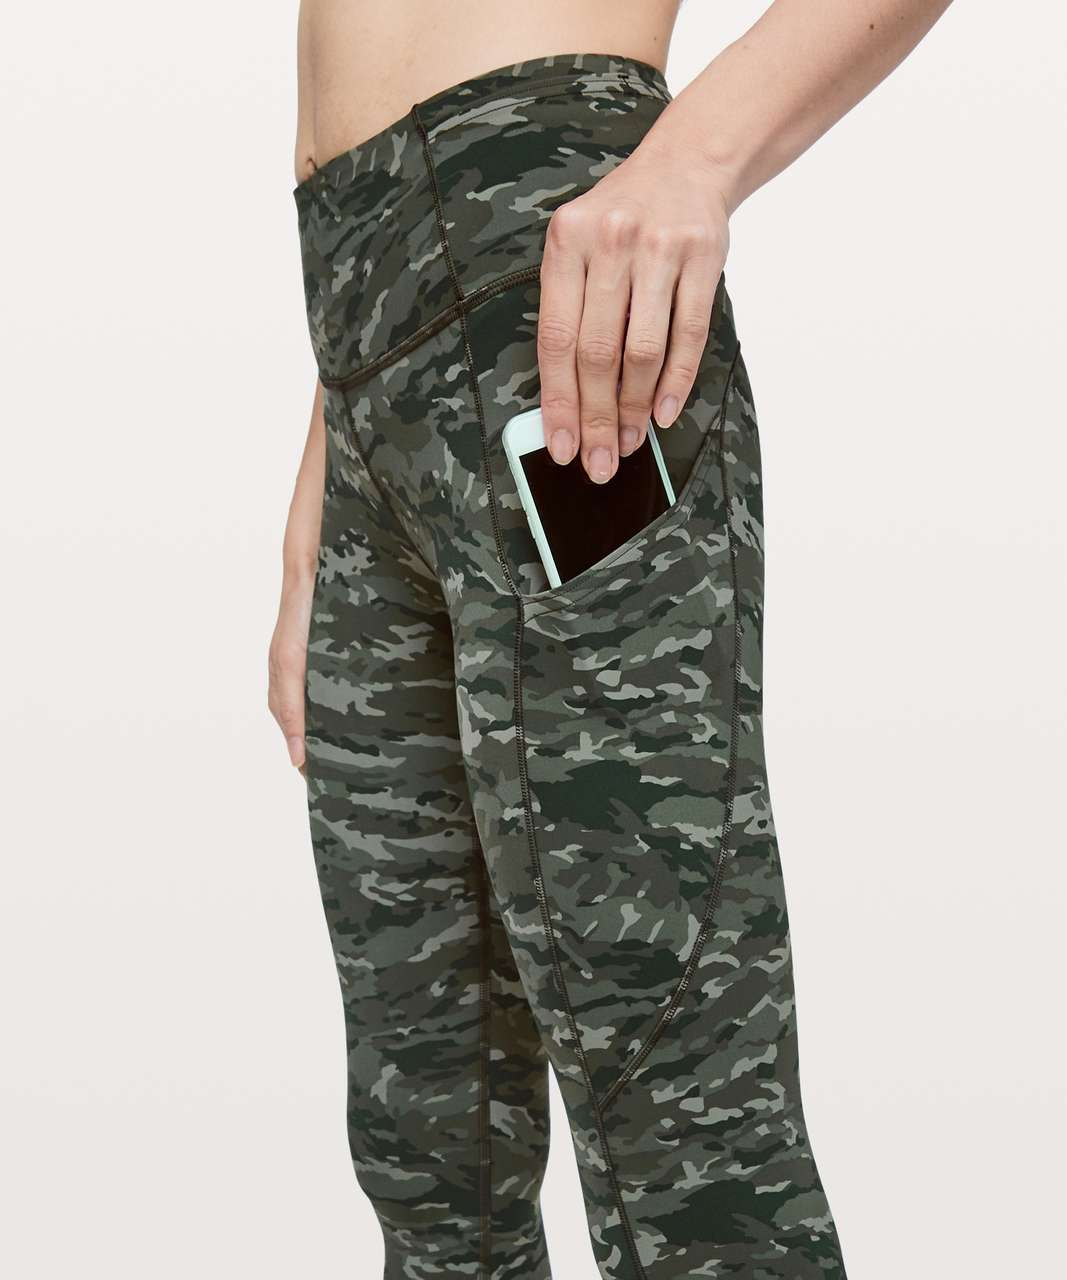 "Lululemon Fast & Free 7/8 Tight II *Nulux 25"" - Evergreen Camo Green Multi"